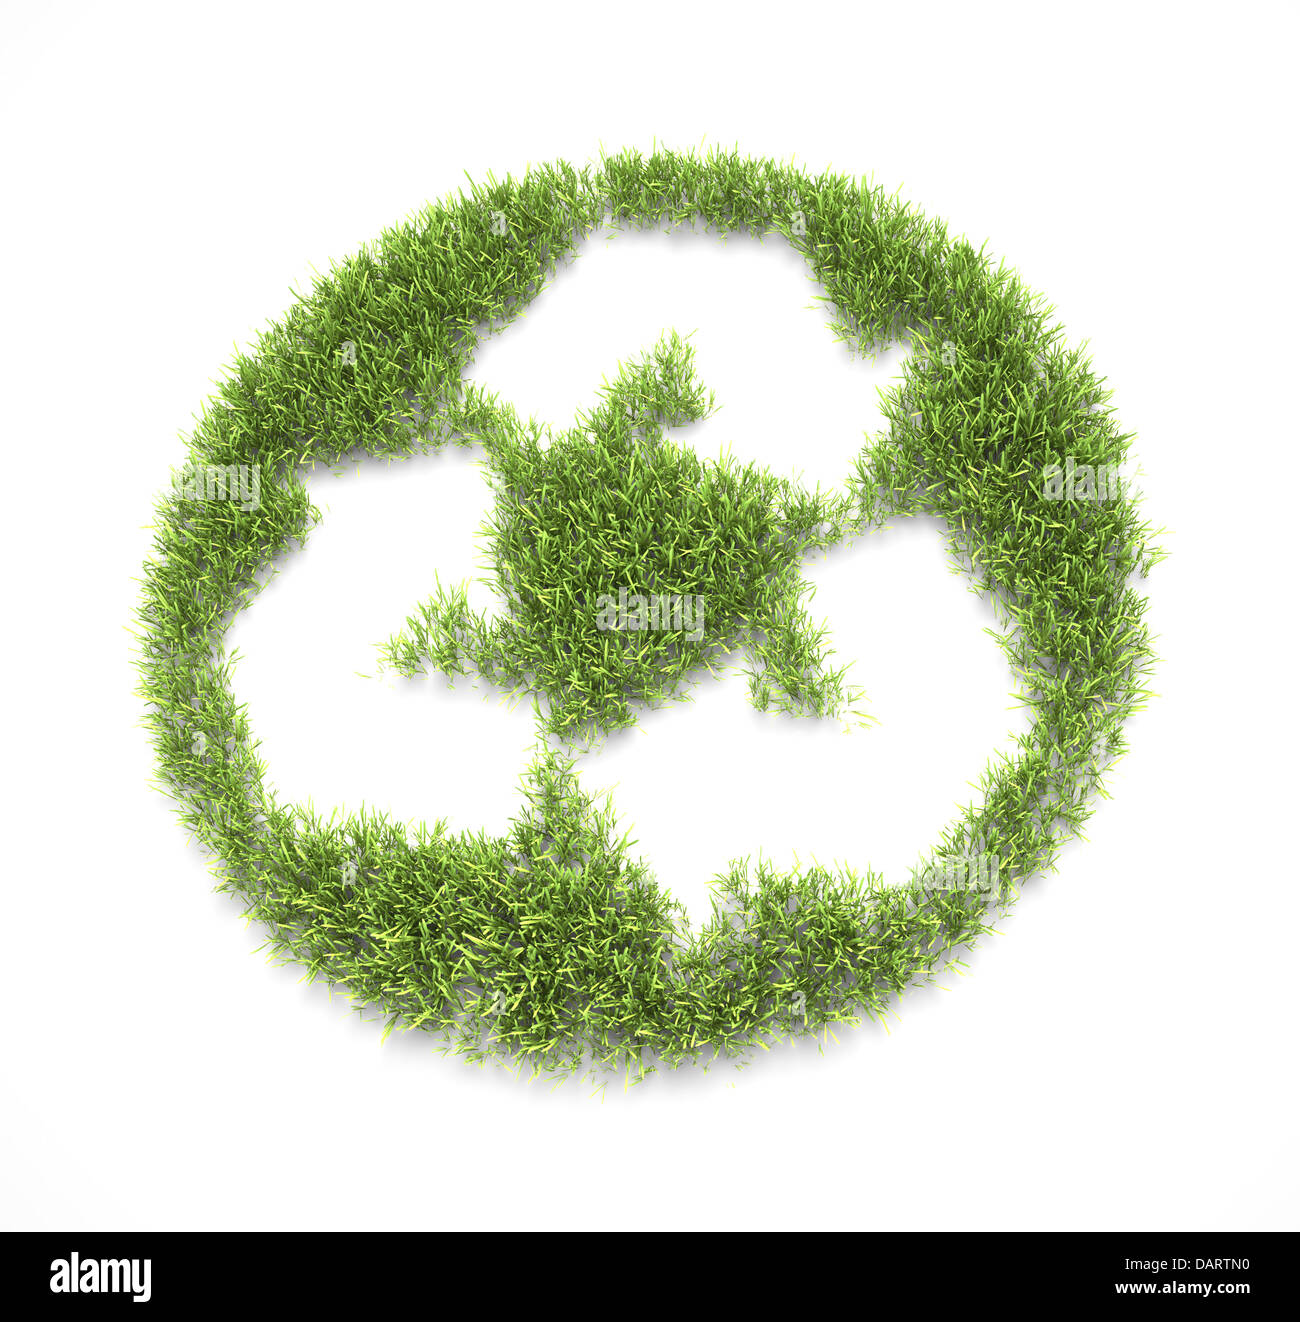 Grass patch shaped like a recycling symbol - Stock Image